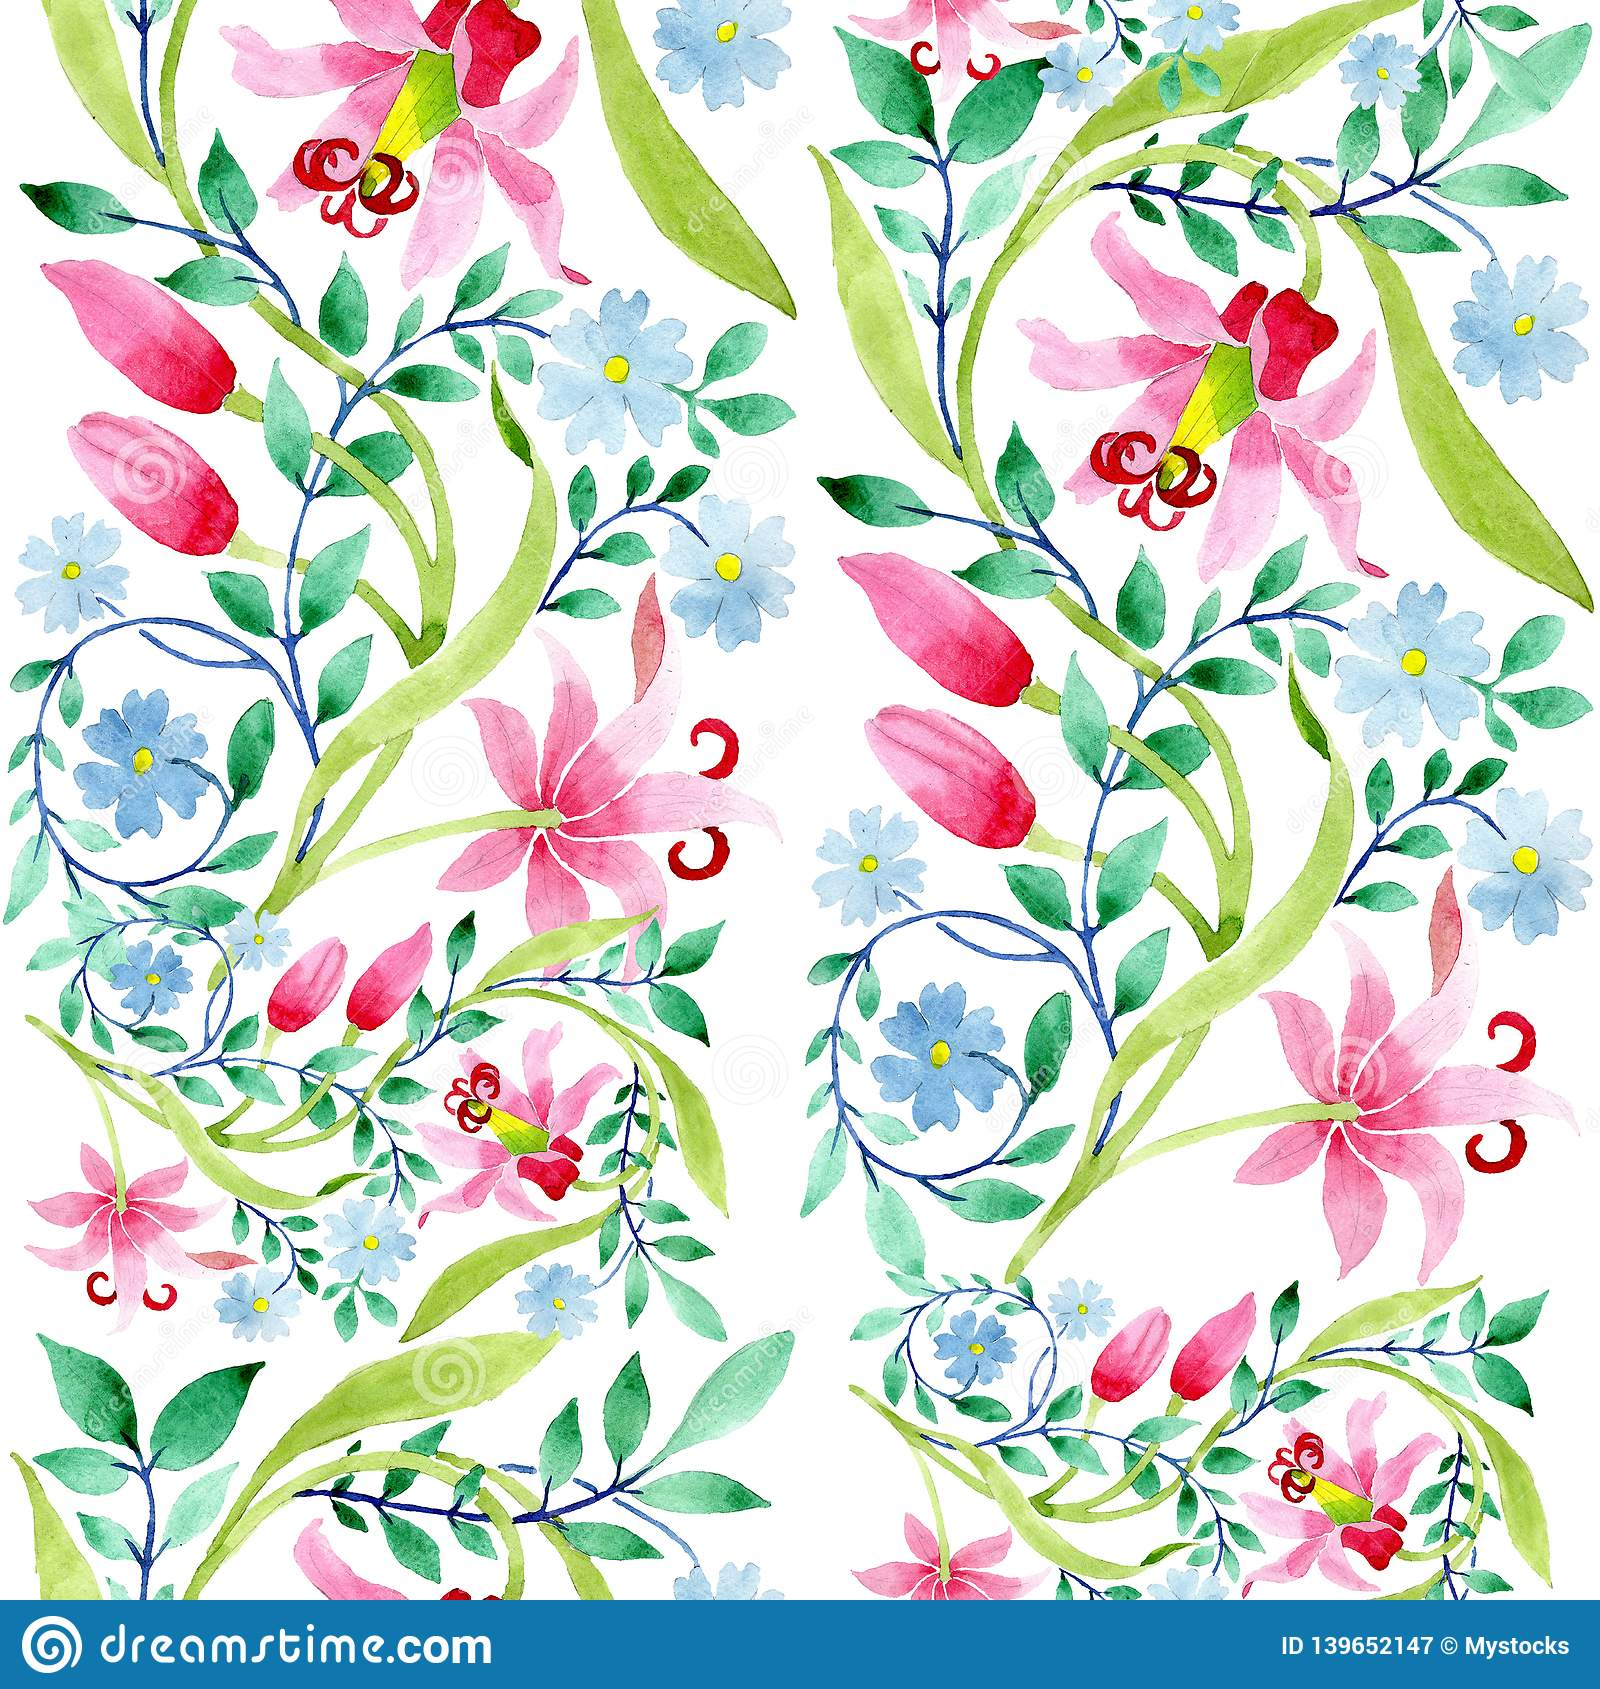 Ornament Pink And Blue Floral Botanical Flowers Watercolor